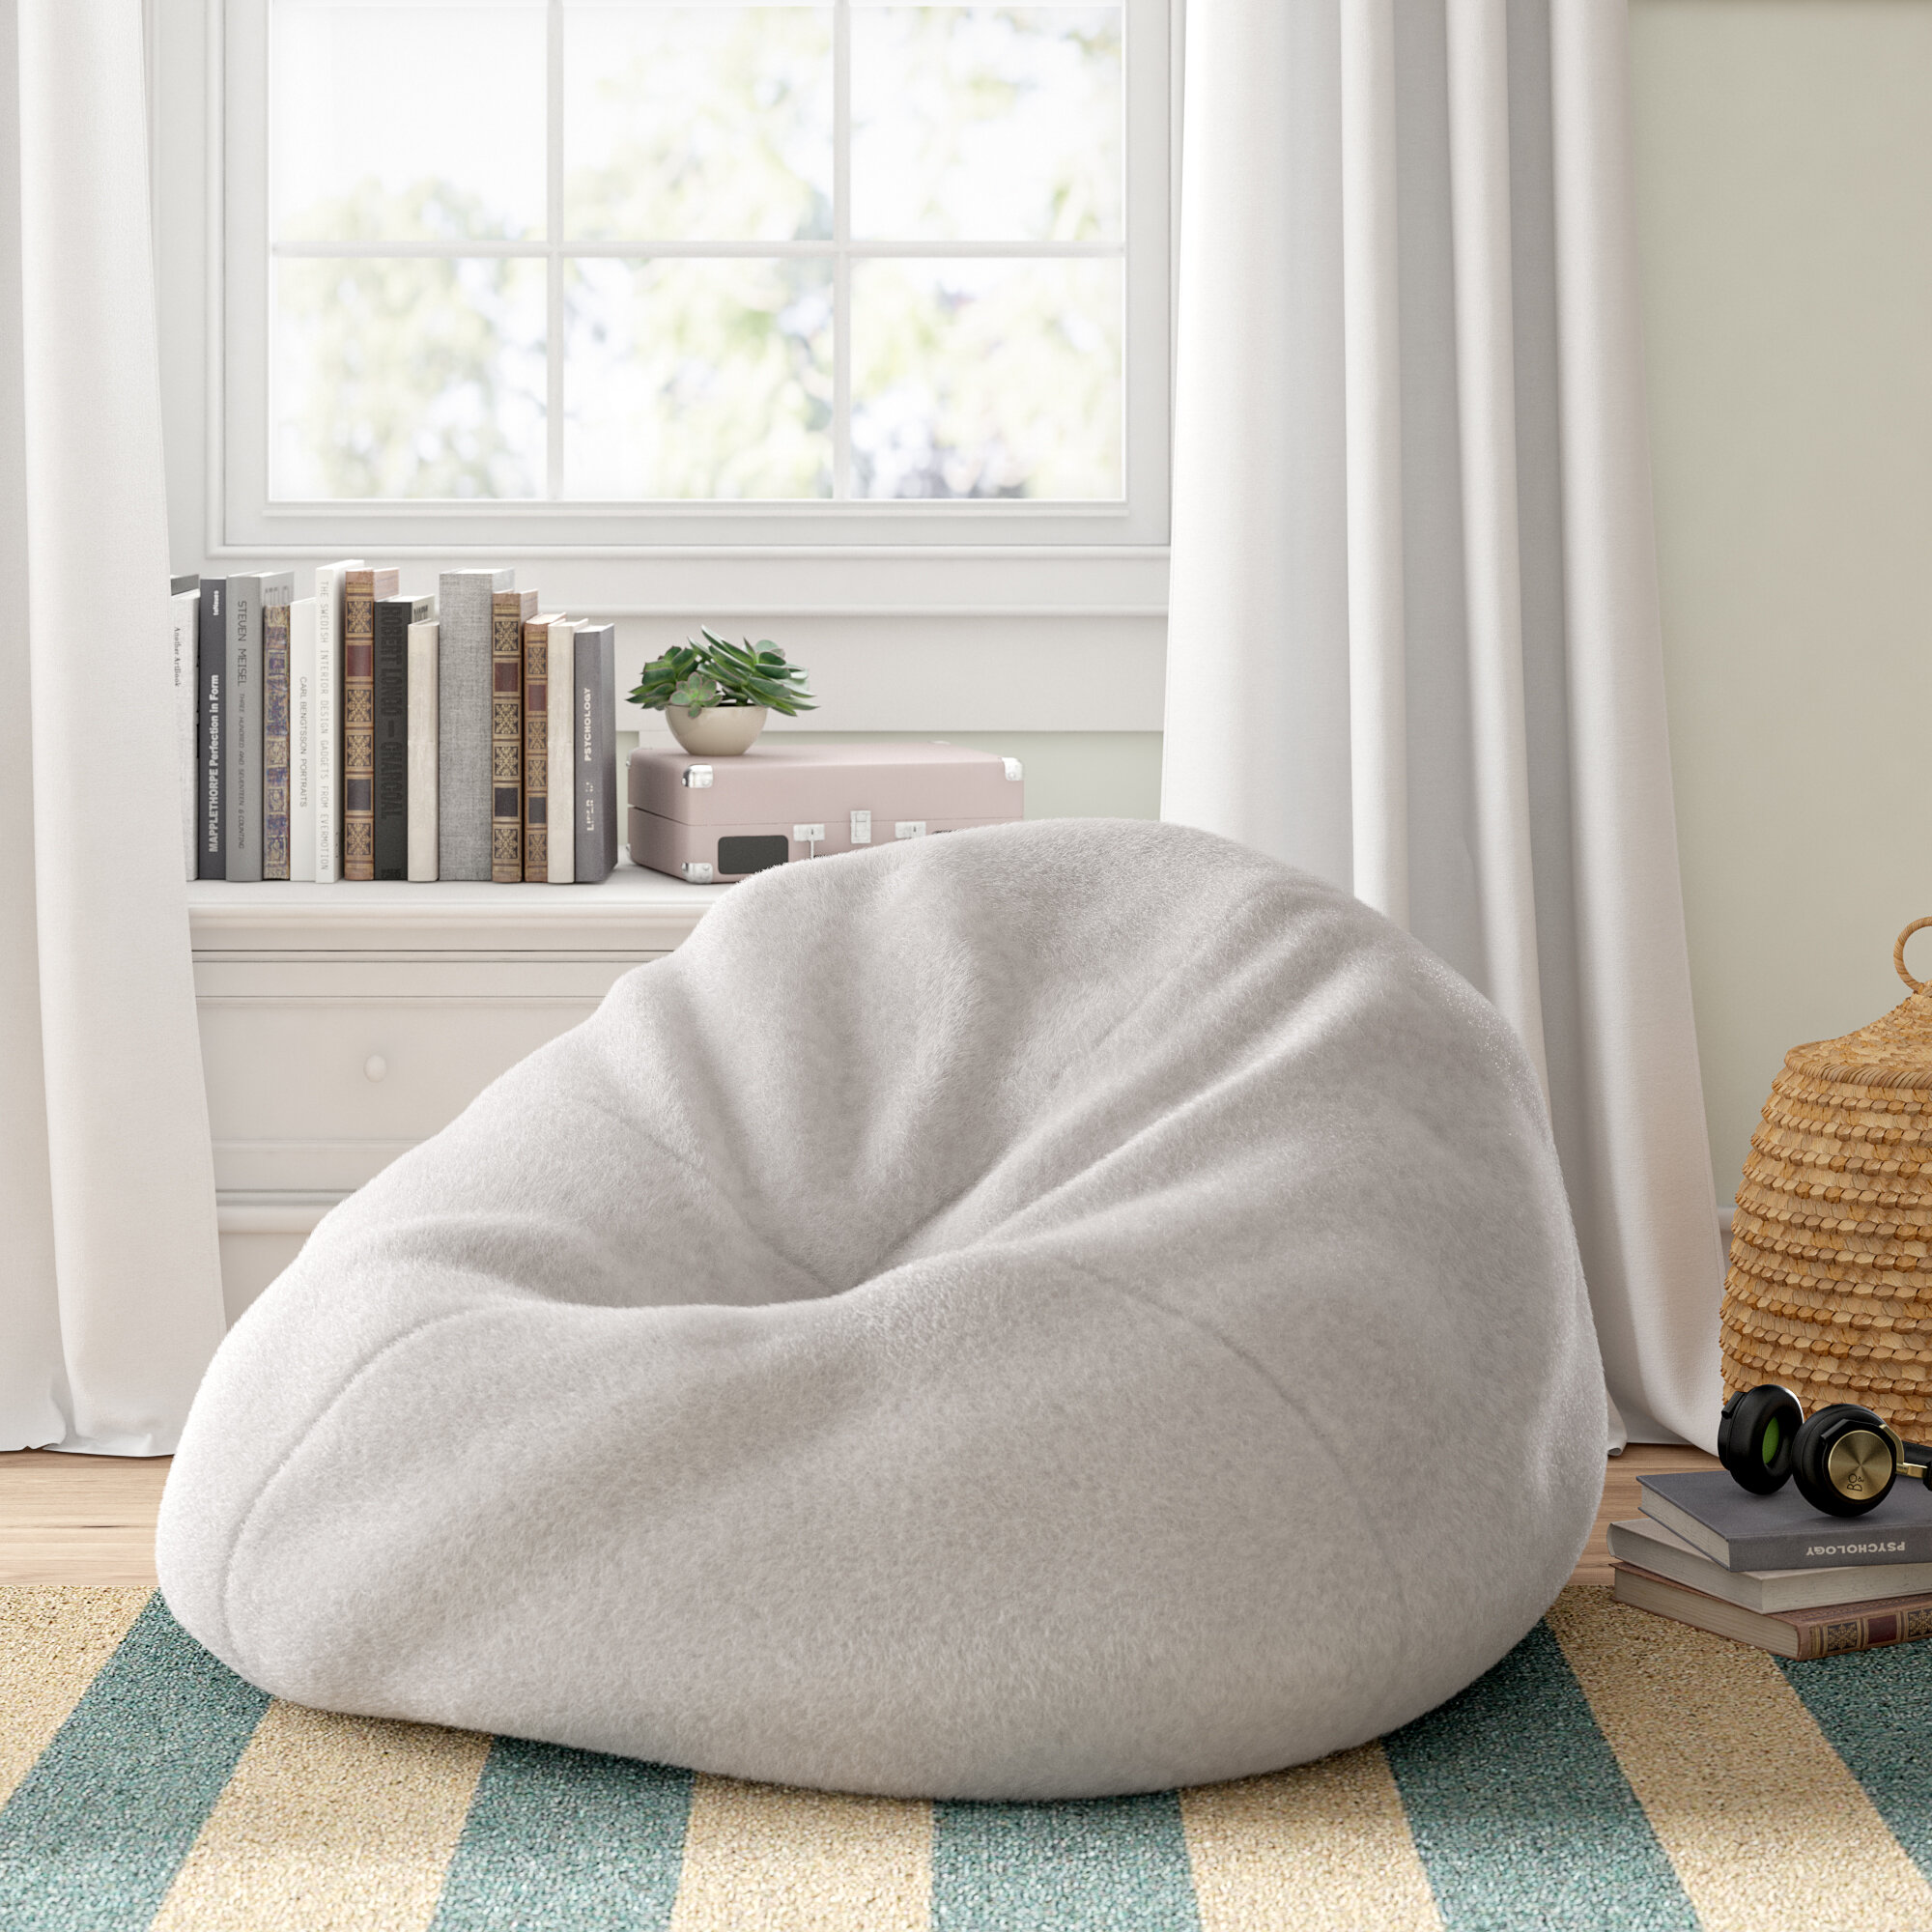 Stupendous Large Bean Bag Chair Caraccident5 Cool Chair Designs And Ideas Caraccident5Info